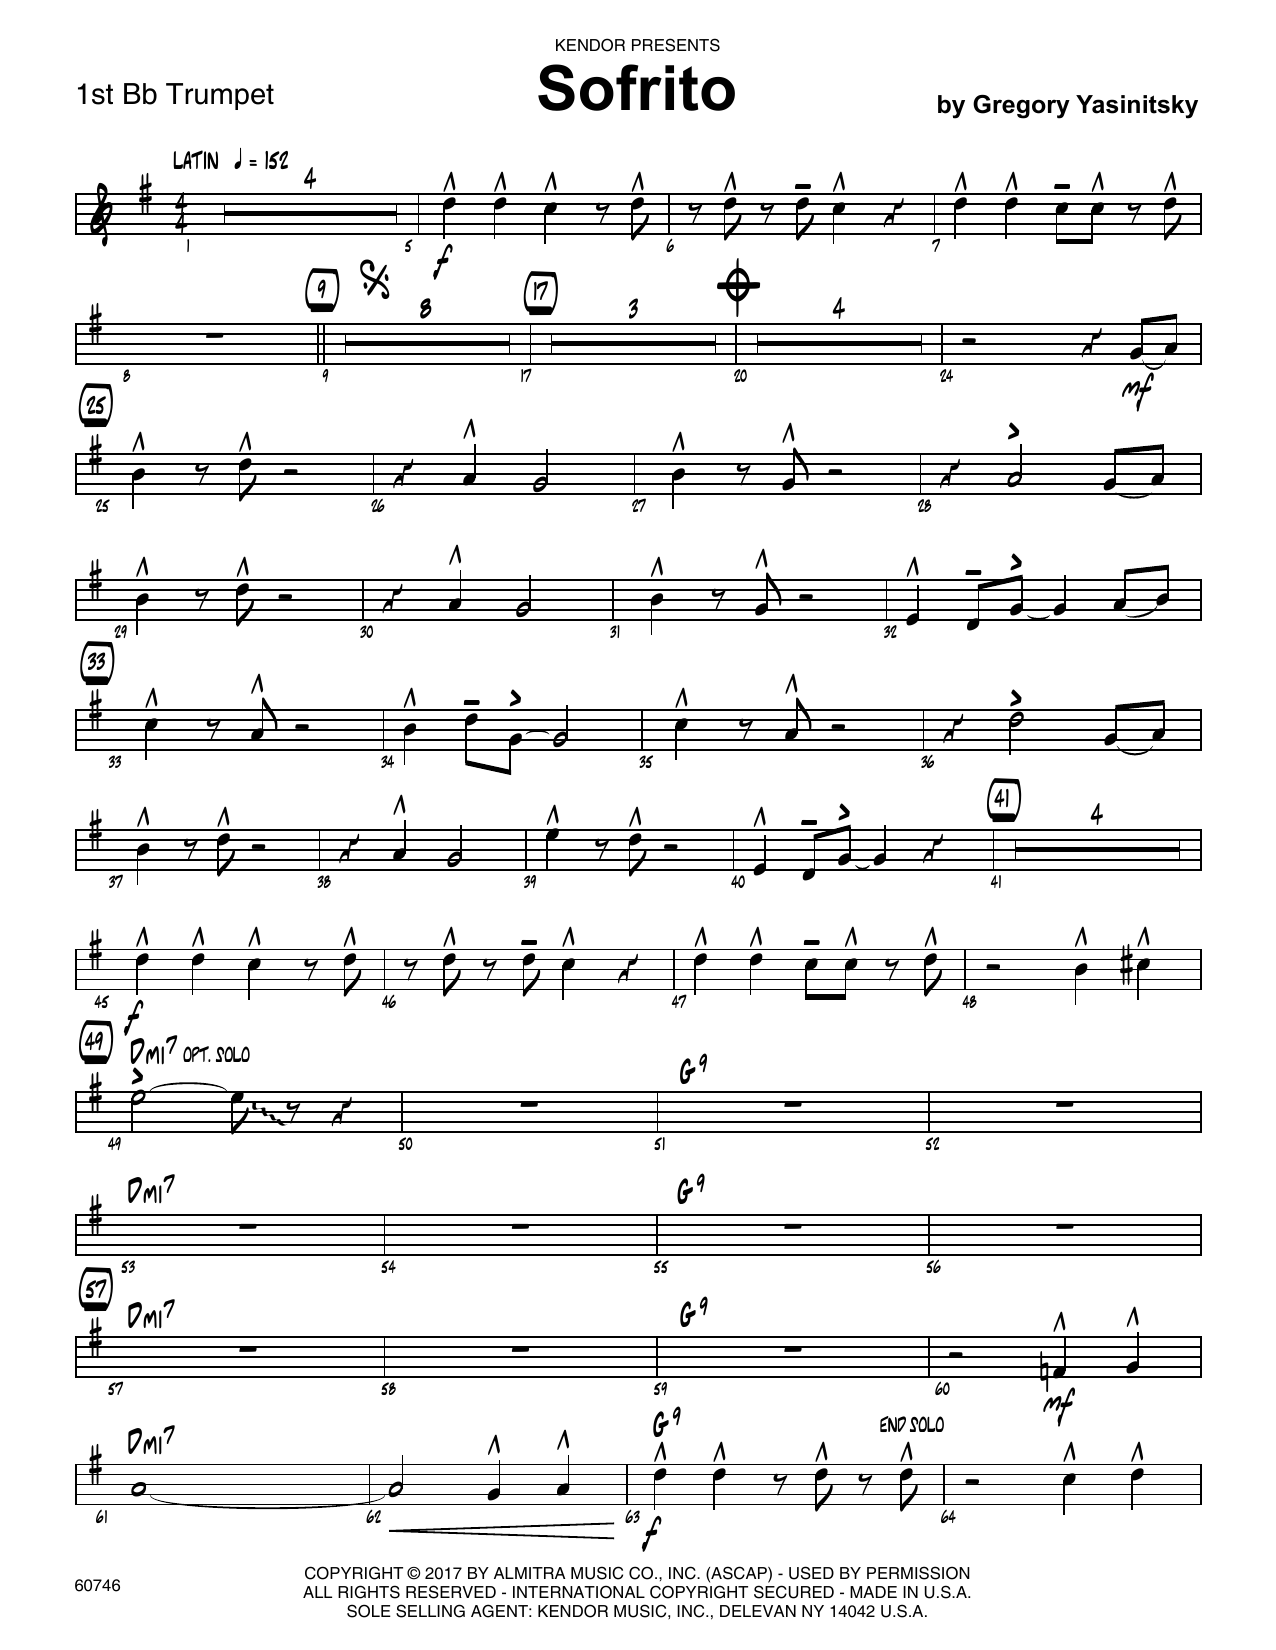 Sofrito - 1st Bb Trumpet Sheet Music